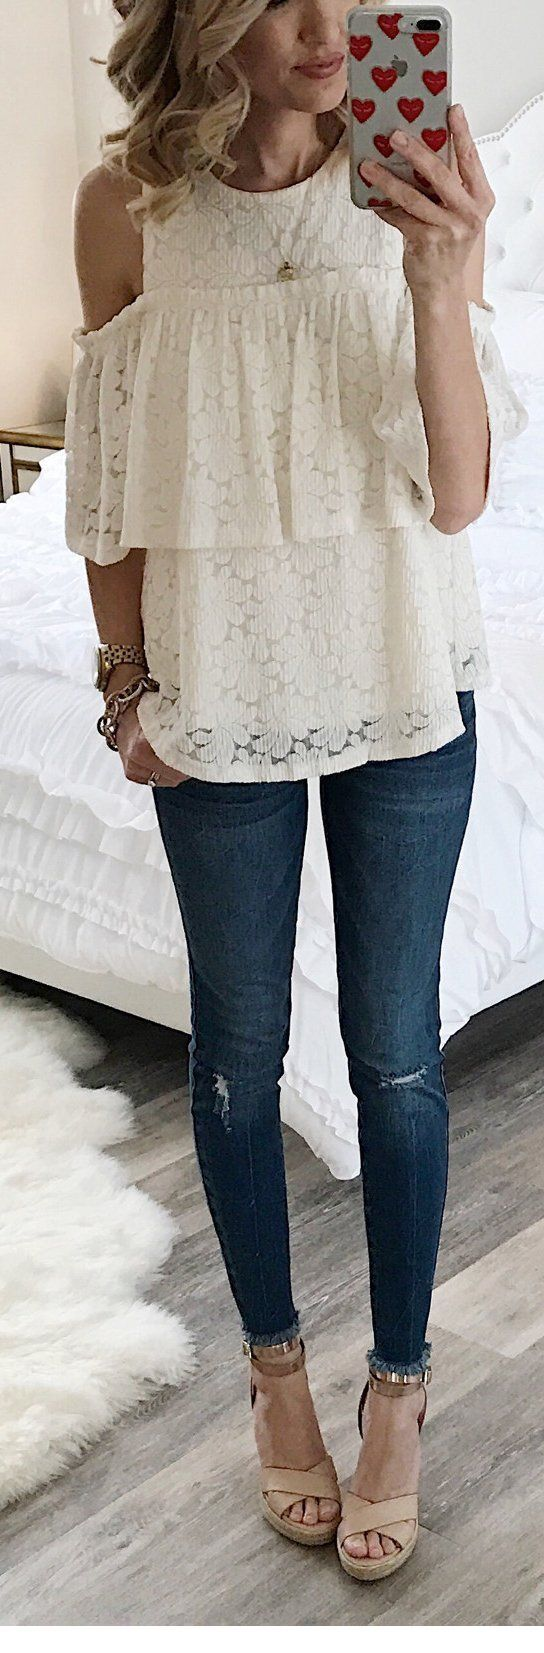 Romantic white lace top with blue jeans